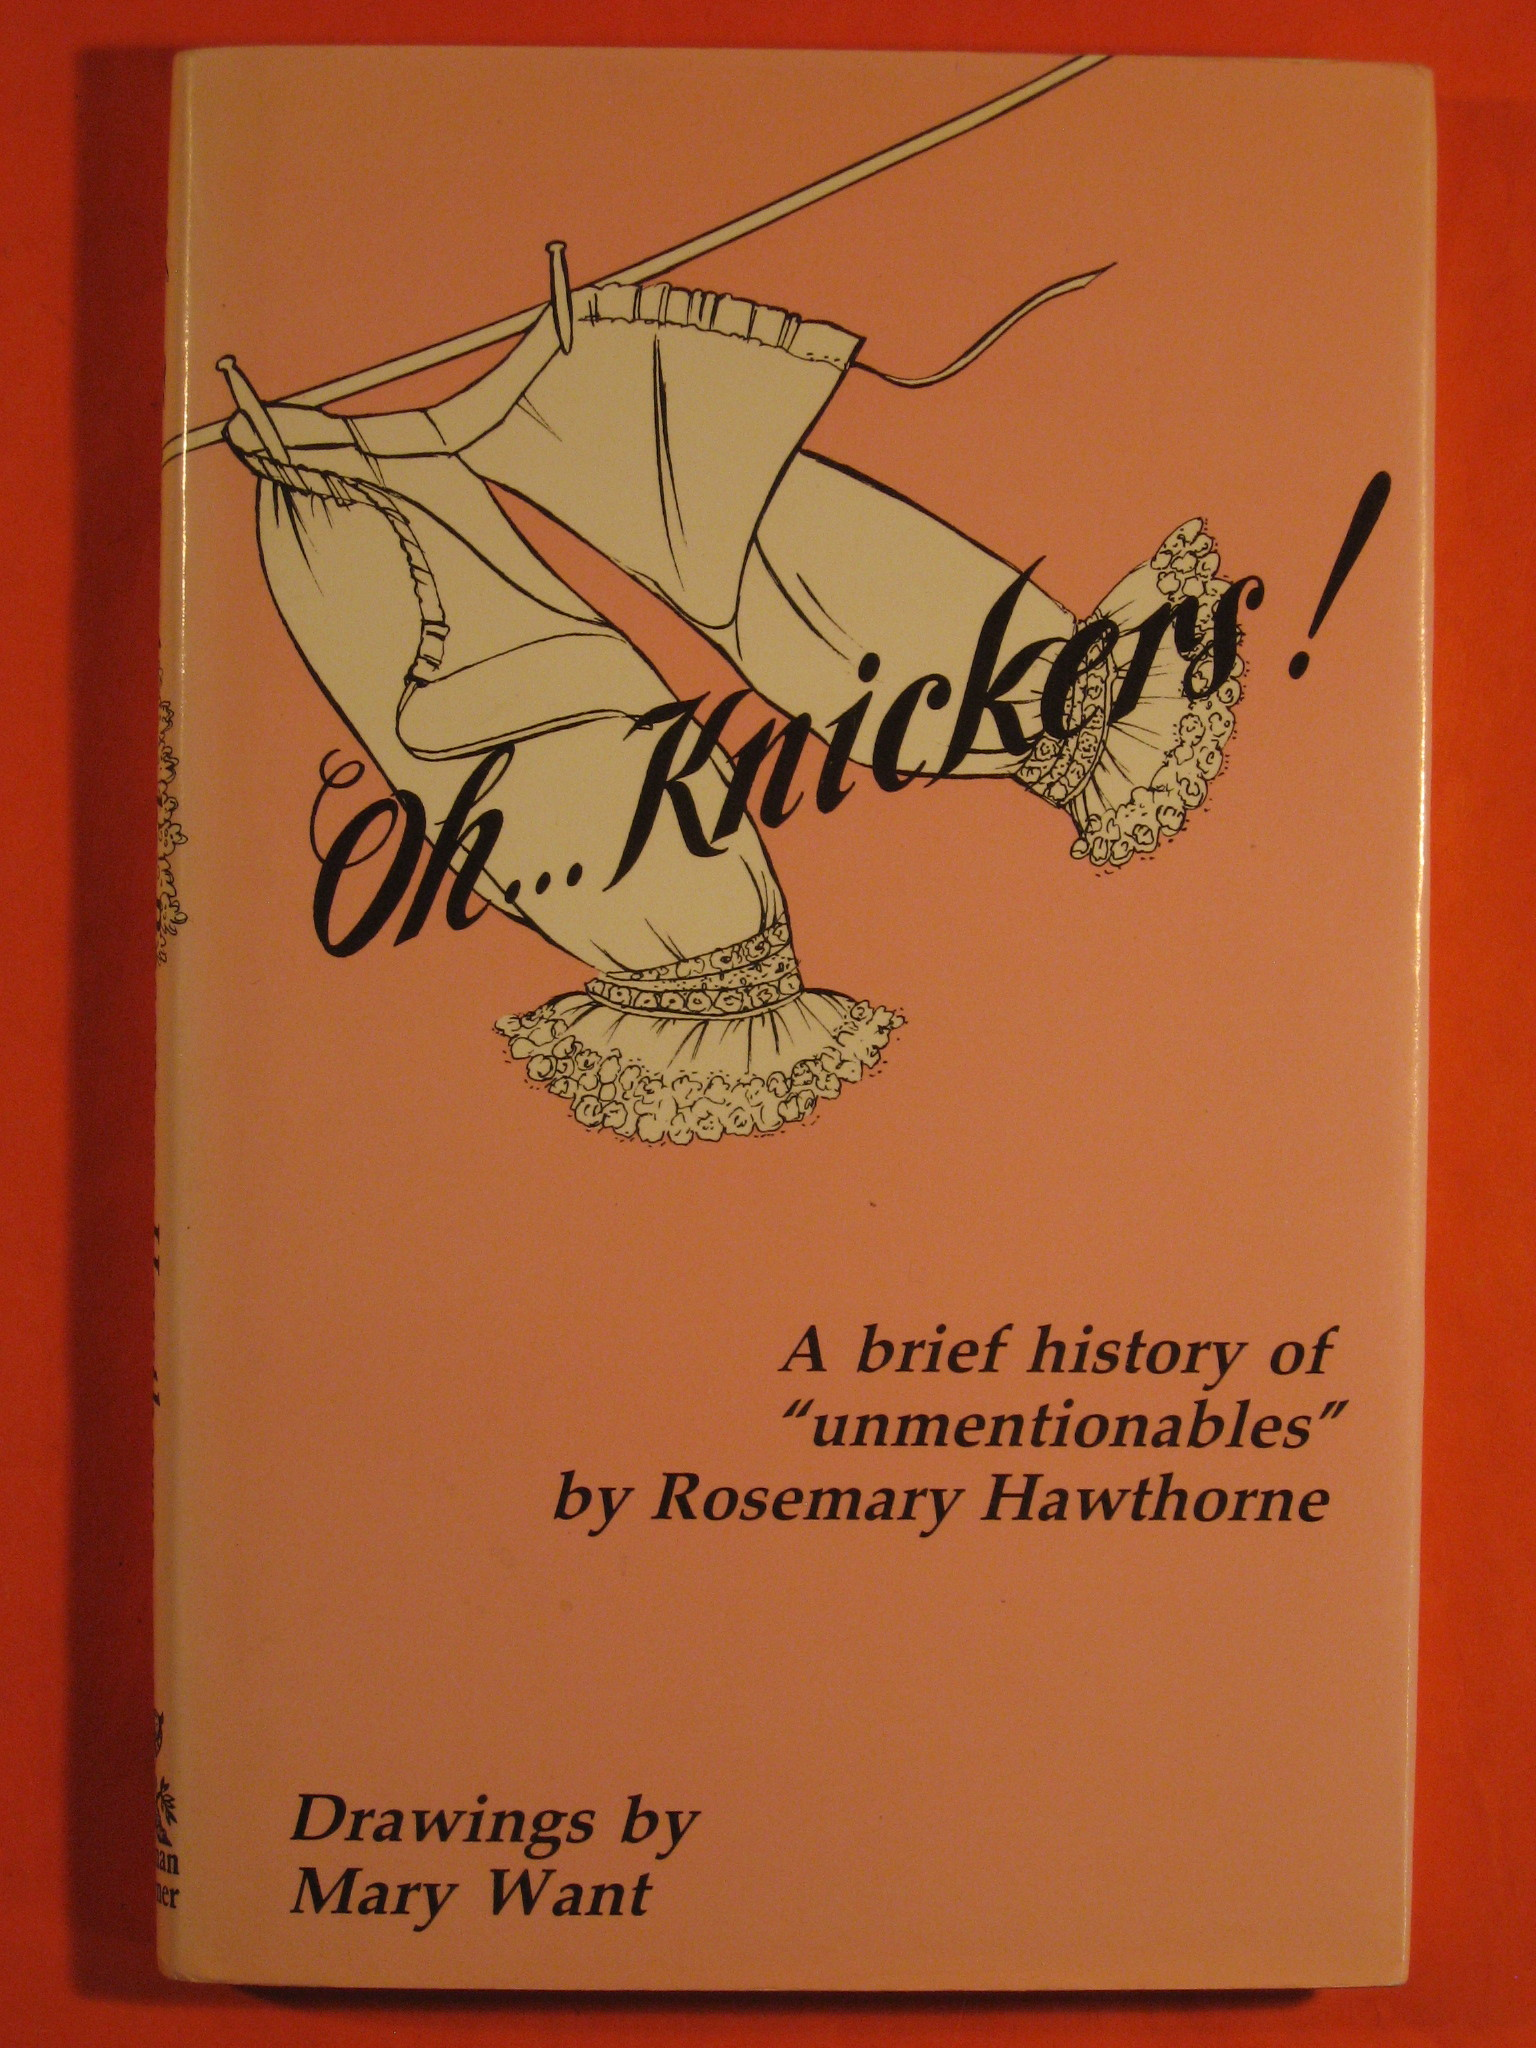 "Oh-- knickers!: A brief history of ""unmentionables"", Hawthorne, Rosemary"